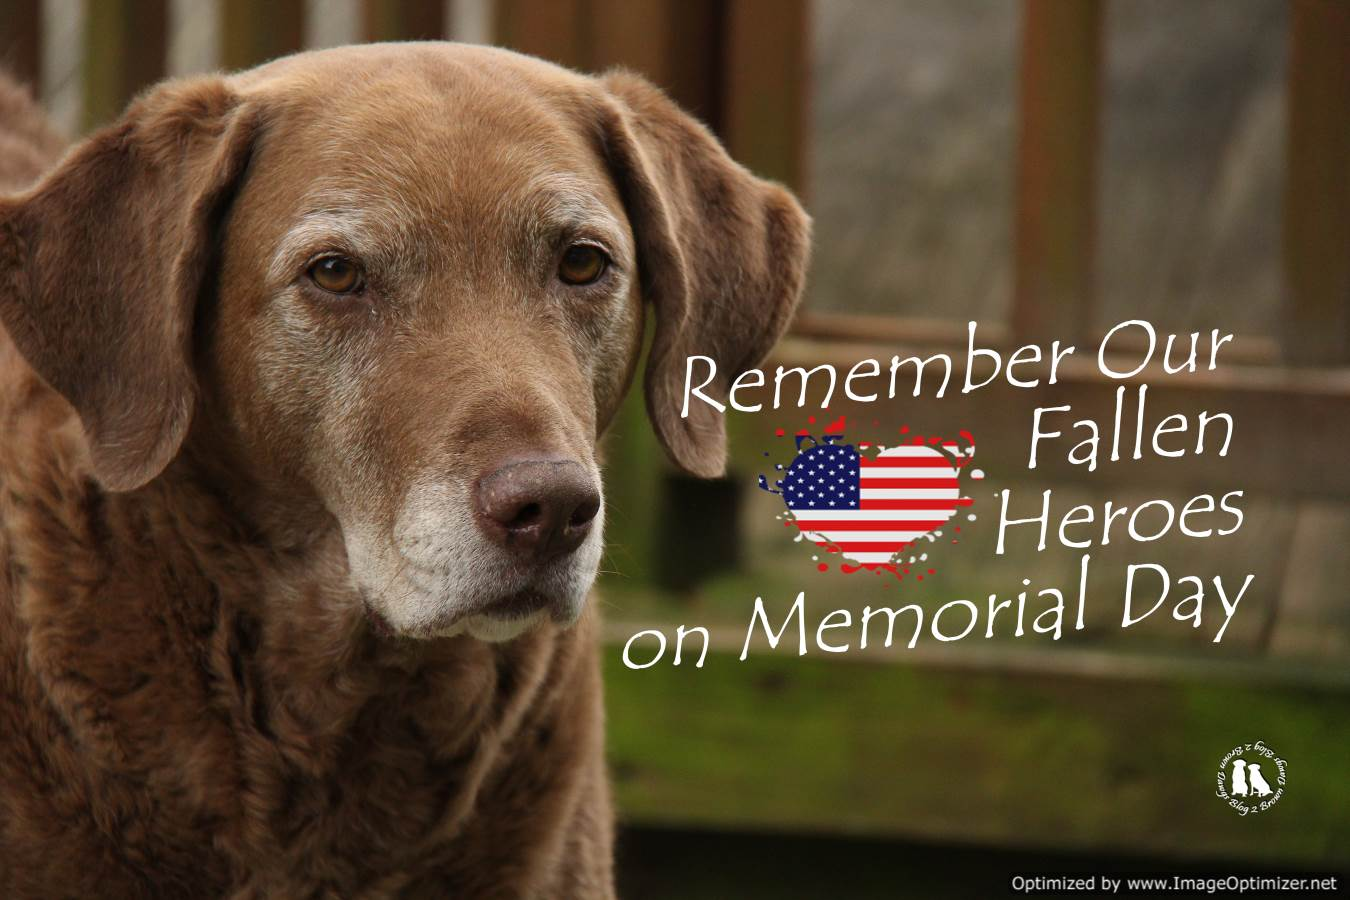 Remember Our Fallen Heroes